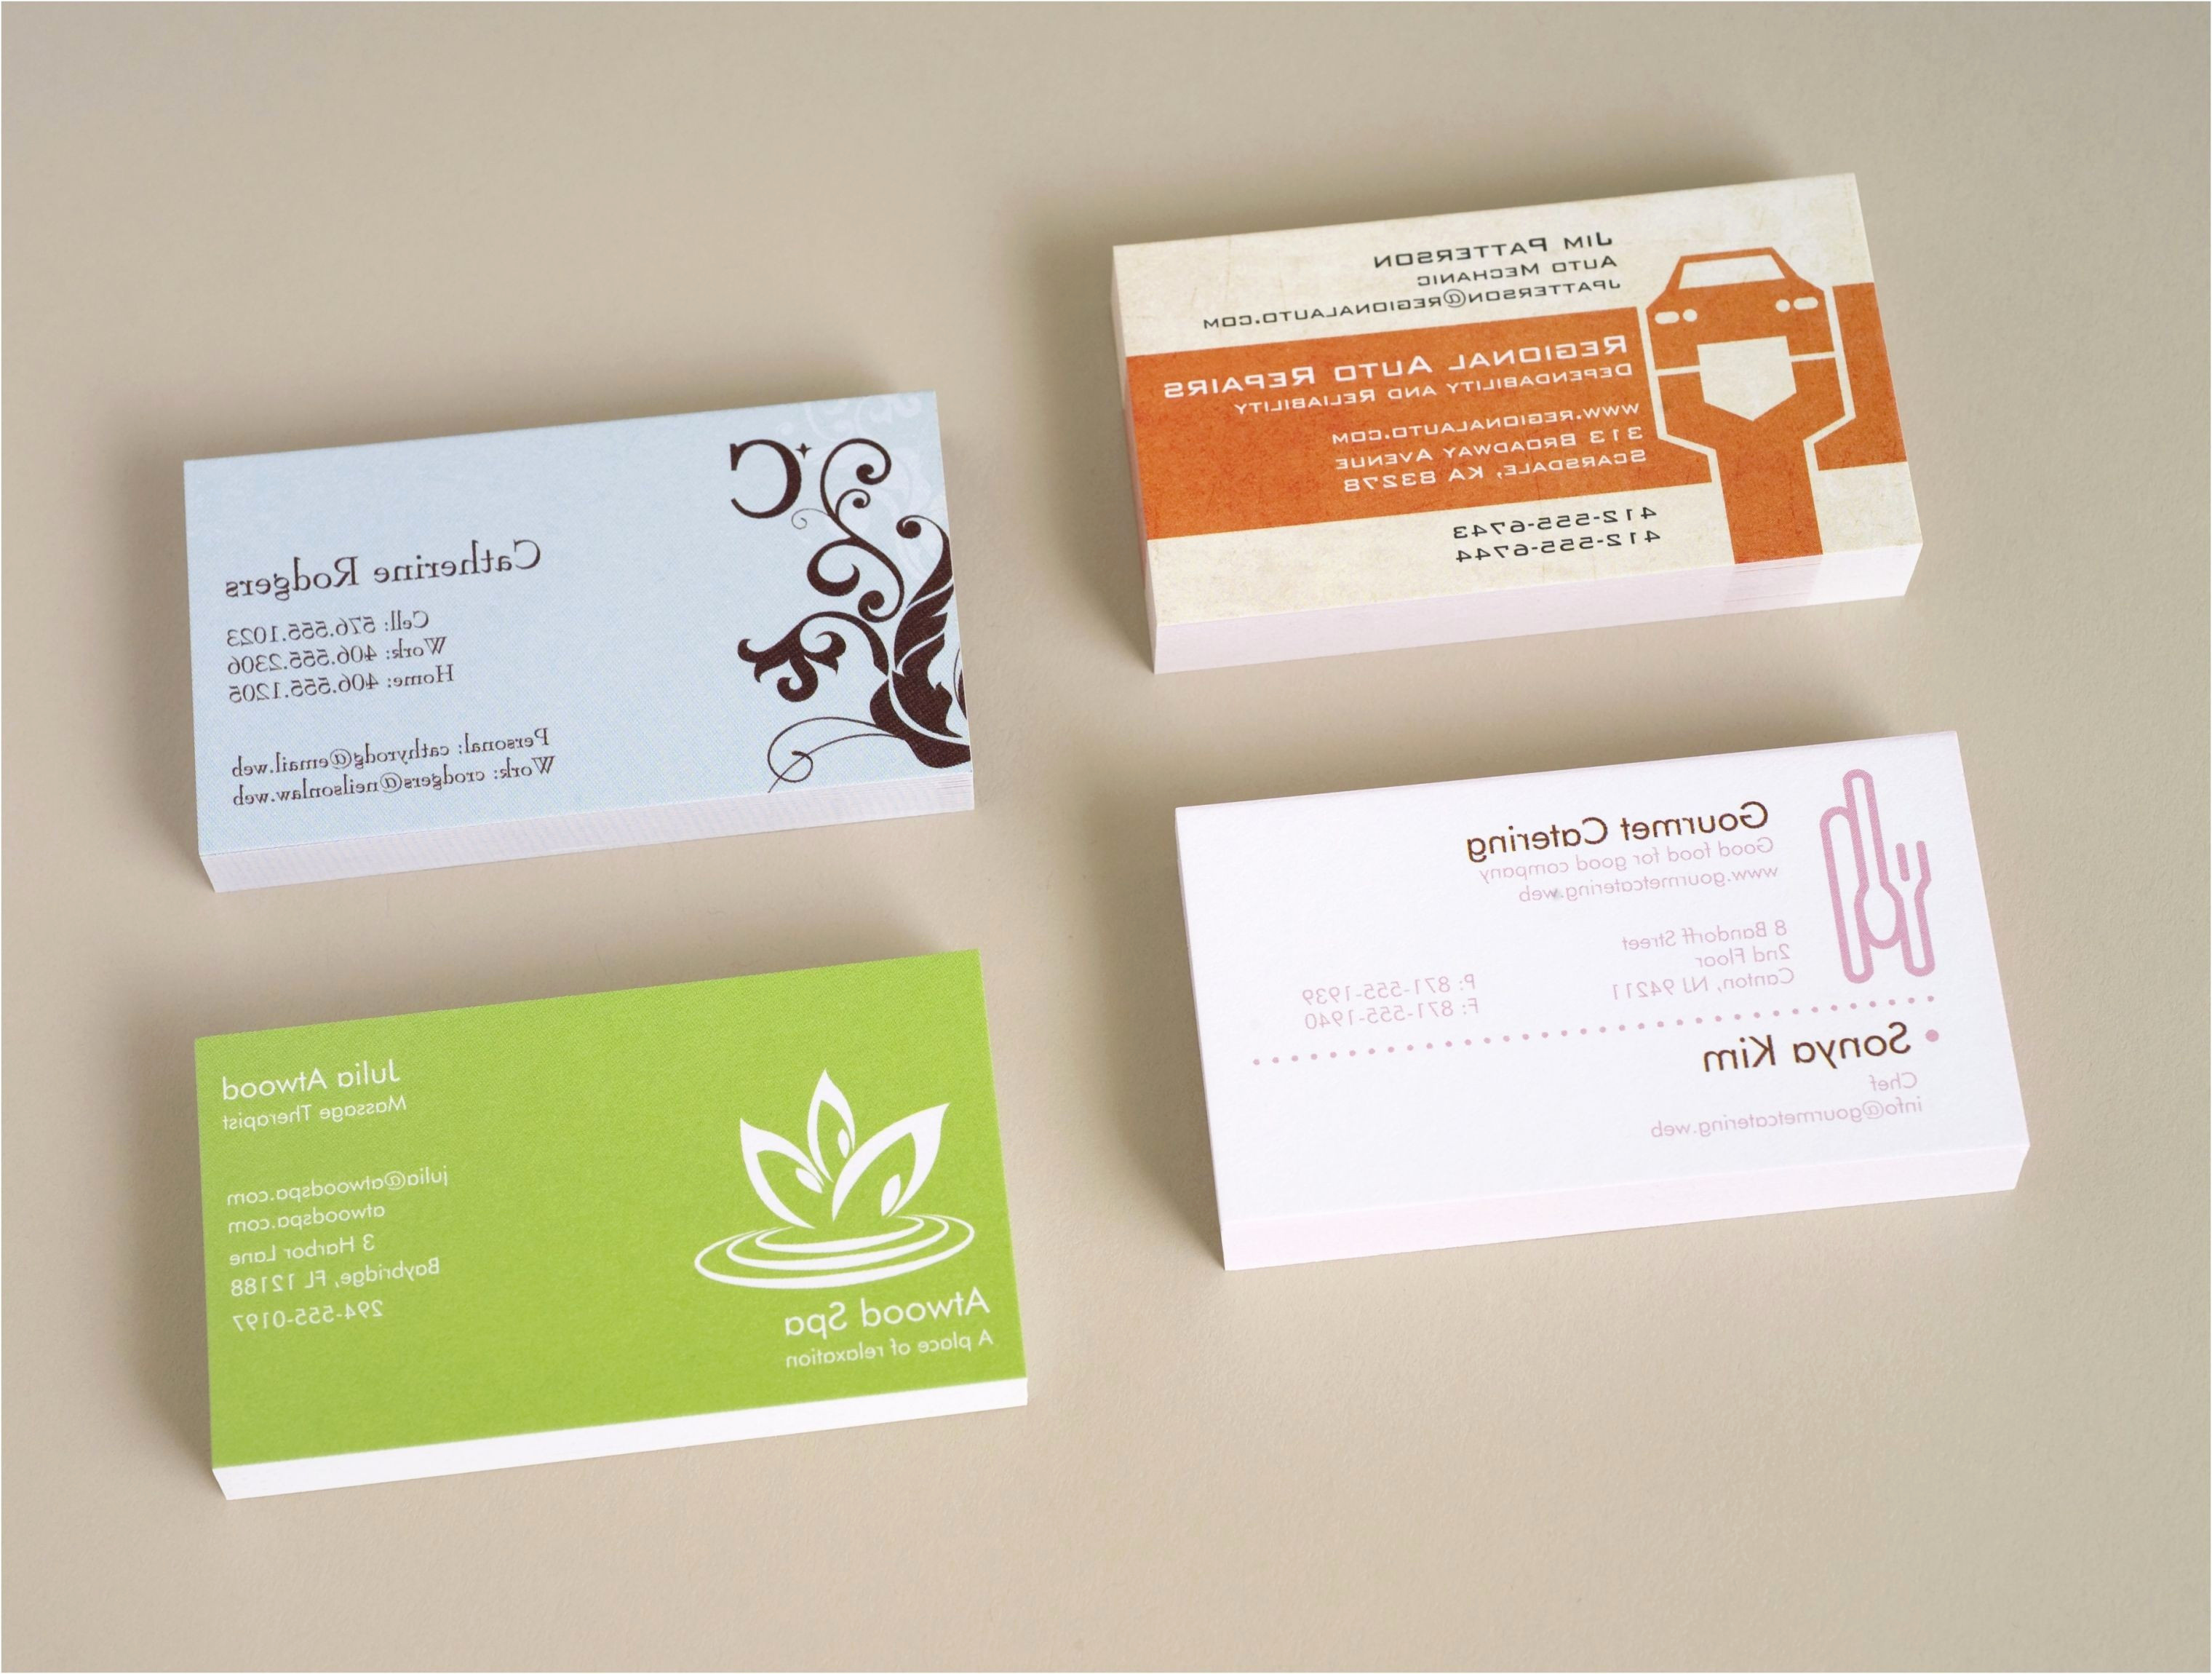 Word Template for Business Cards Best Of Double Sided Business Cards Template Word Inspirational